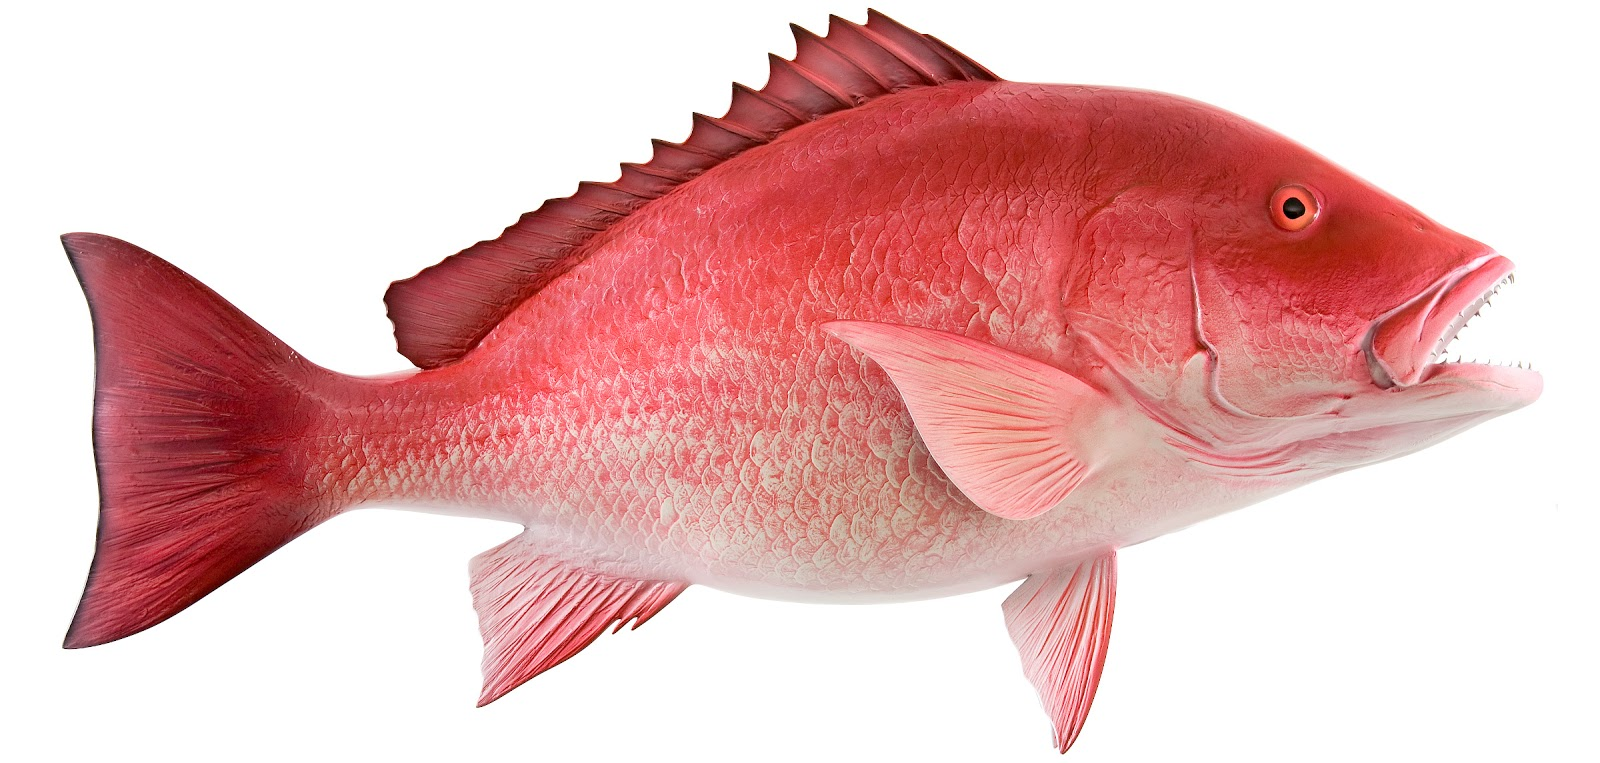 Red Snapper Suppliers, Buy Whole Red Snapper, Red Snapper Size, Red ...